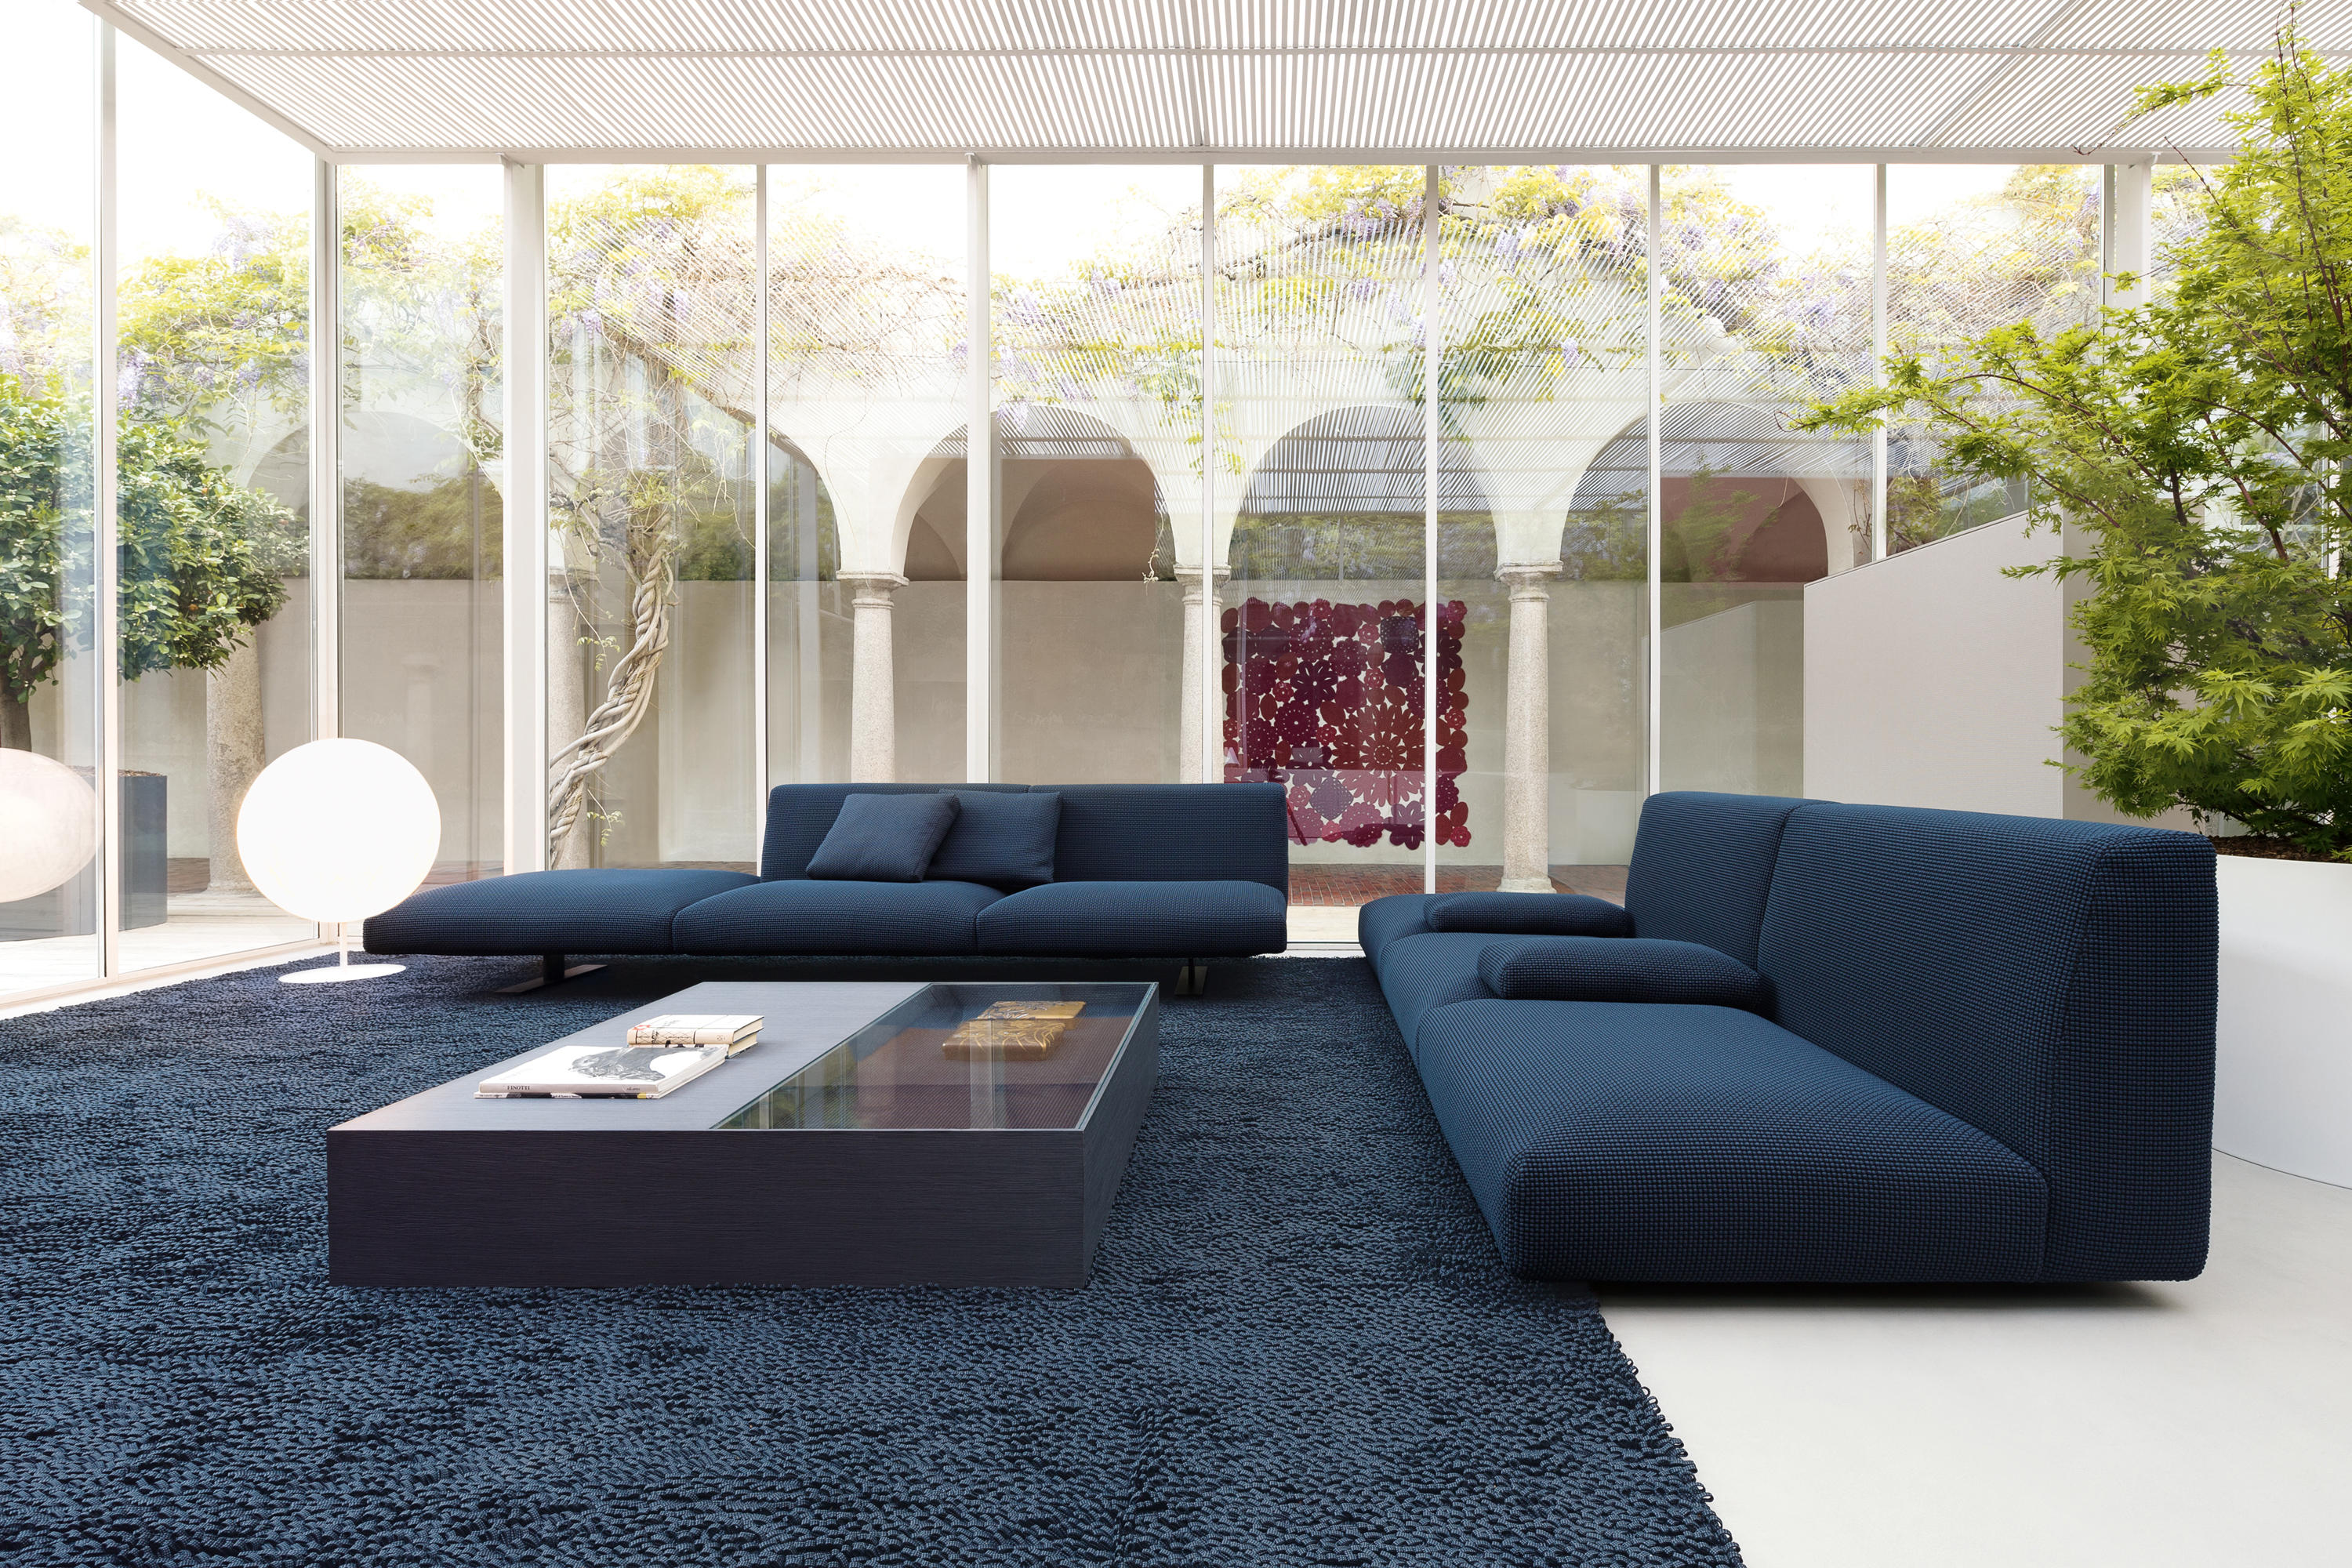 Move indoor modular seating system lounge sofas from for Paola lenti